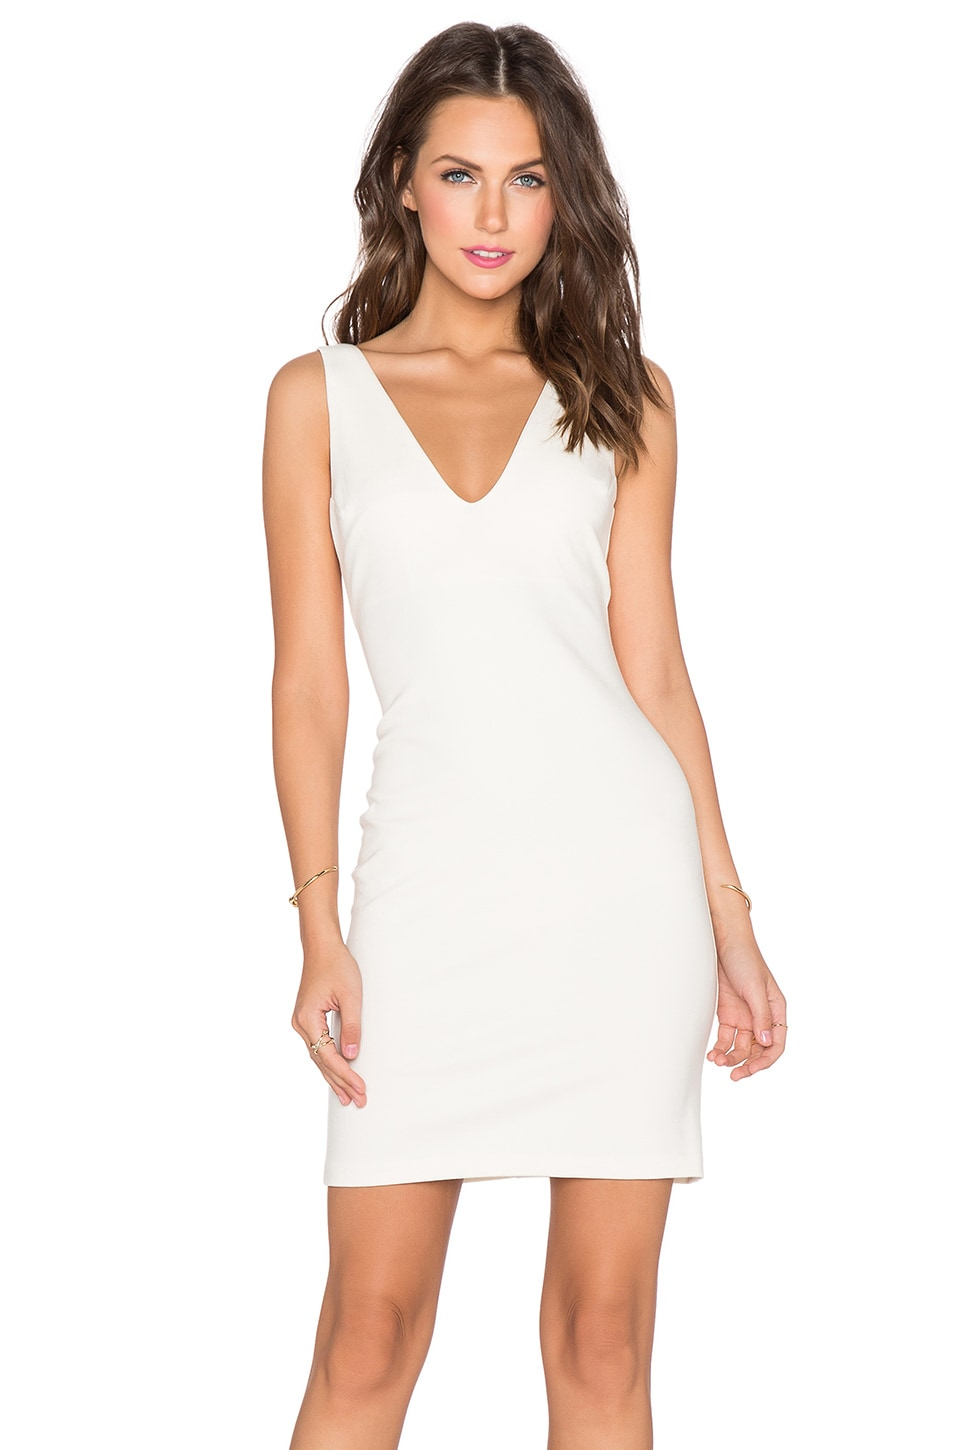 Sale Many Kinds Of Discount Latest Collections Portsmouth Dress in Ivory Amanda Uprichard Looking For Clearance Footlocker Finishline L3B5Qw4c